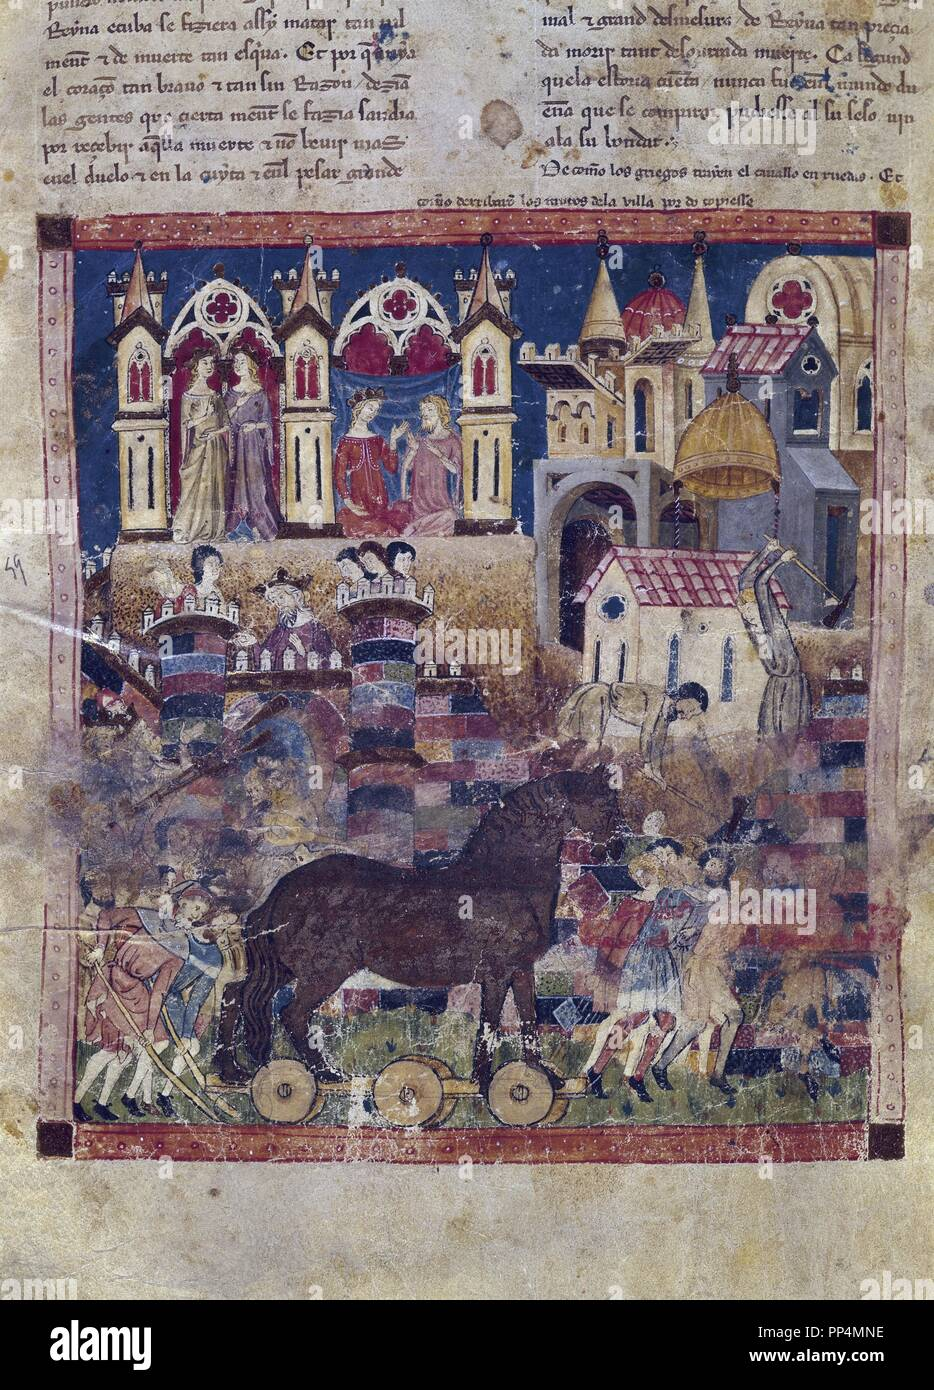 TROJAN CHRONICLE - GREEKS BUILD THE HORSE WITH WHEELS - GOTHIC MINIATURE - 1350. Author: GONZALEZ, NICOLAS. Location: MONASTERIO-BIBLIOTECA-COLECCION. SAN LORENZO DEL ESCORIAL. MADRID. SPAIN. - Stock Image